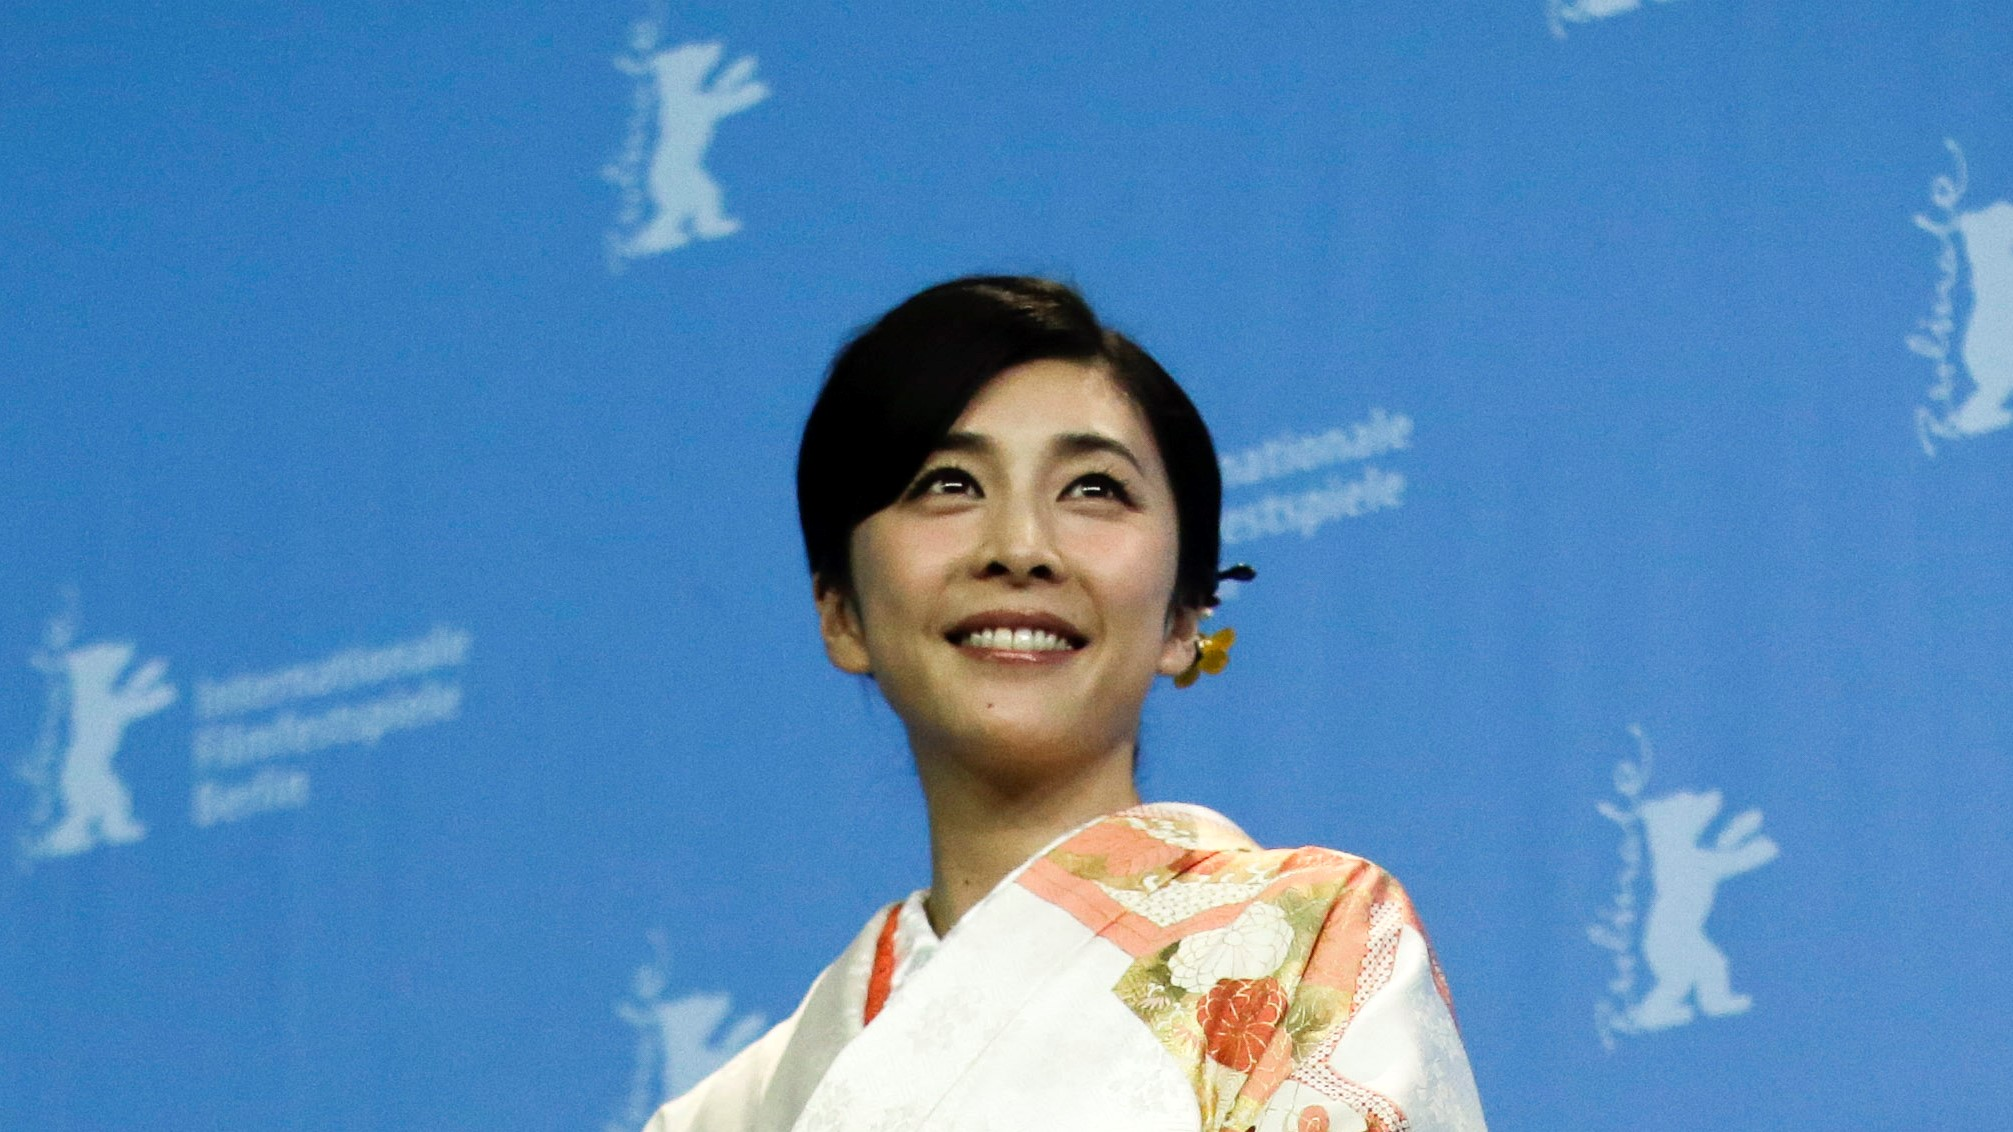 Japanese Actress Yuko Takeuchi Died Aged 40 in Apparent Suicide